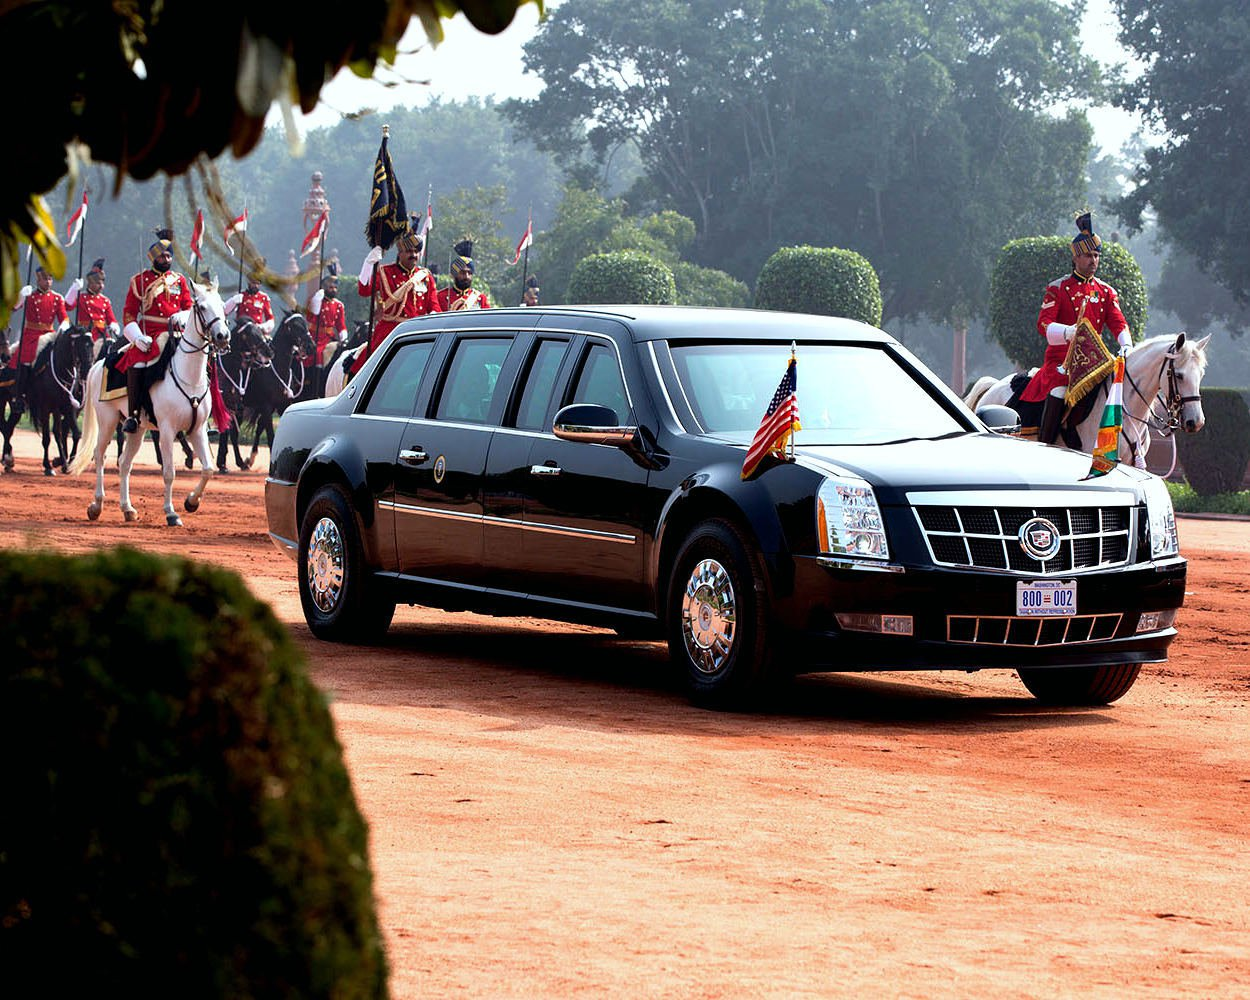 BARACK OBAMA TRAVELS TO CEREMONIAL WELCOME IN NEW DEHLI - 8X10 PHOTO (EE-114)